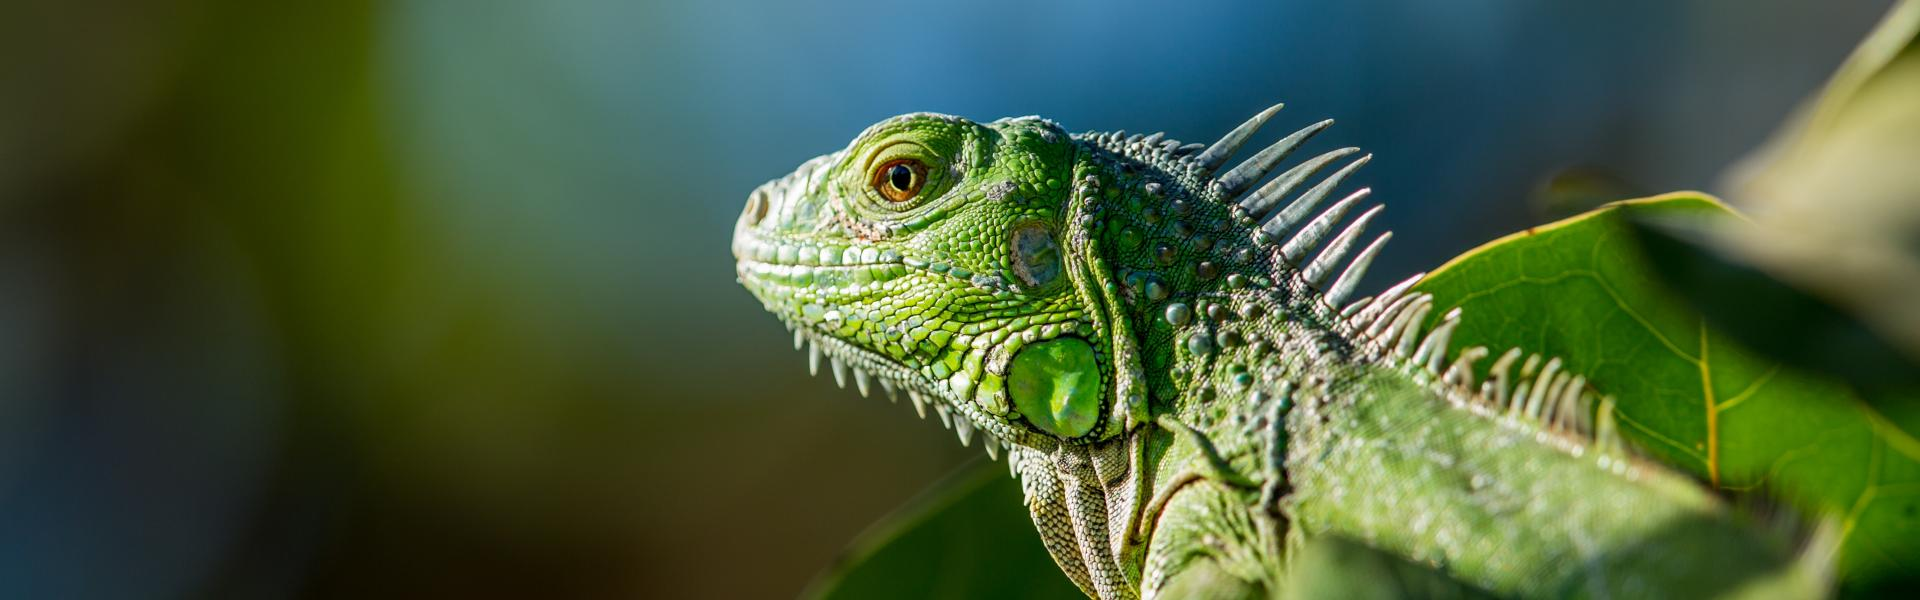 An iguana sitting in a forest.